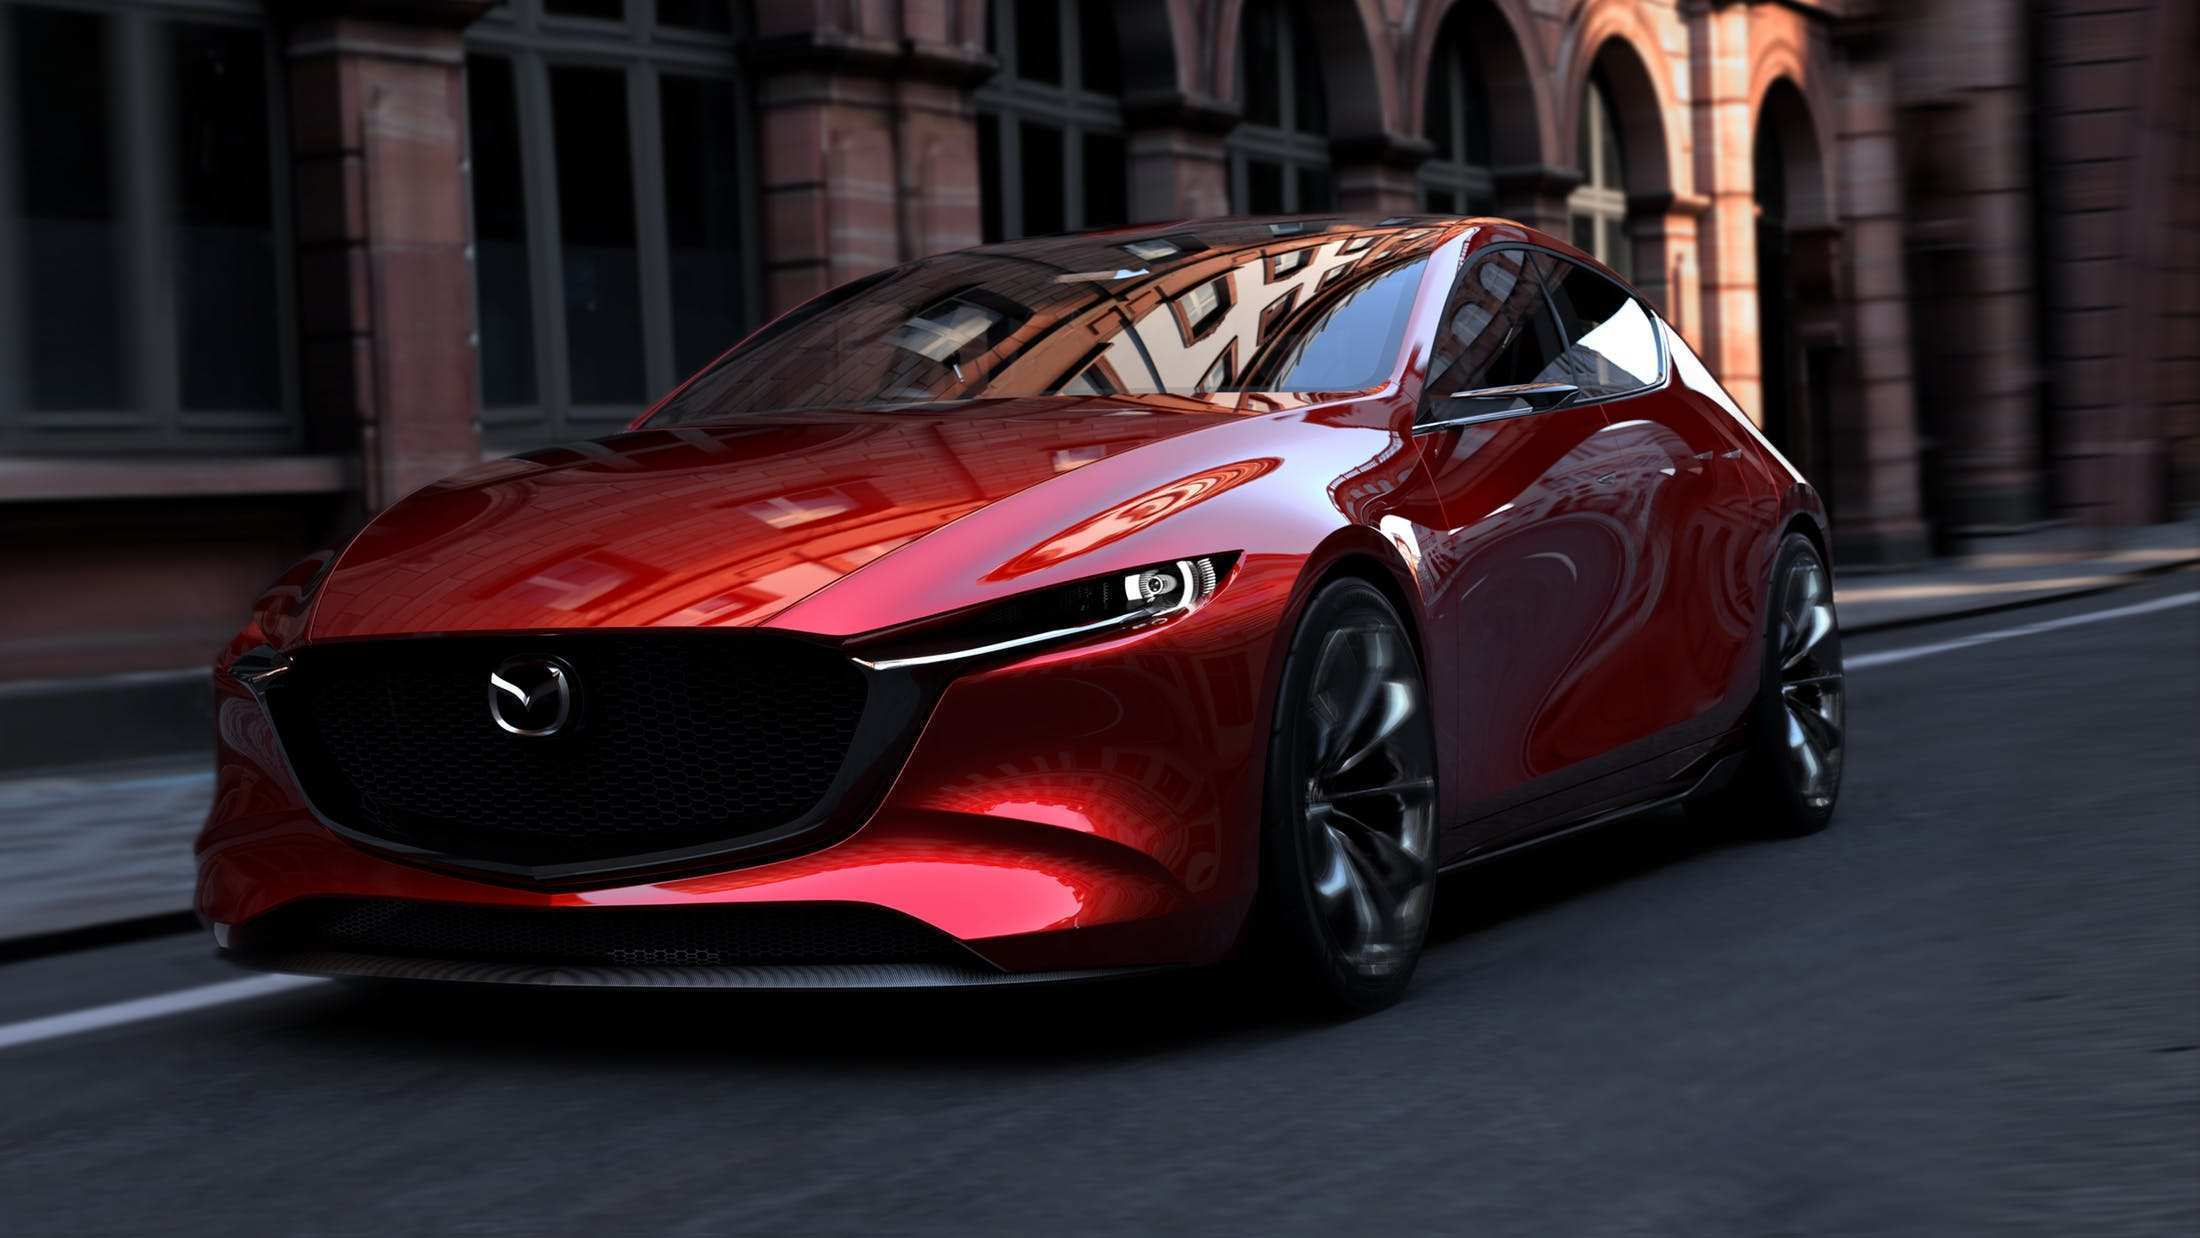 72 Concept of New Conceptos Mazda 2020 Ratings with New Conceptos Mazda 2020